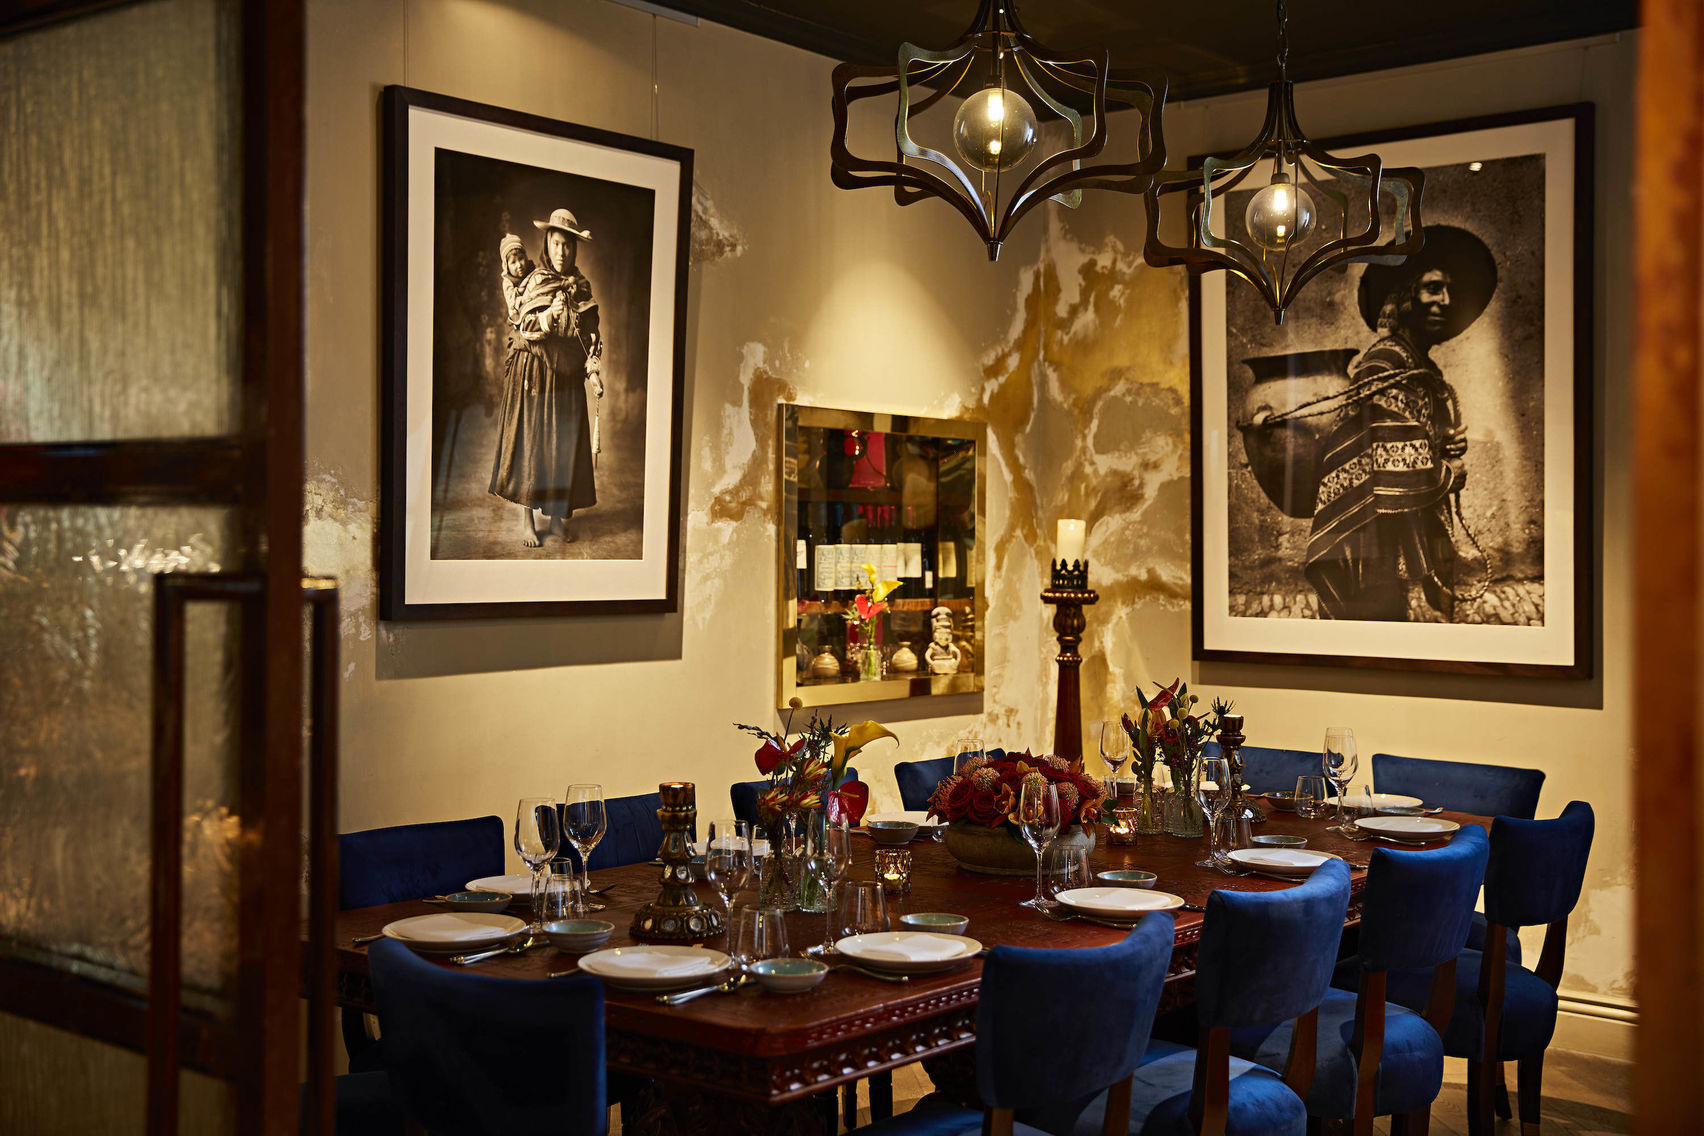 The Best Cheap Private Dining Rooms in London